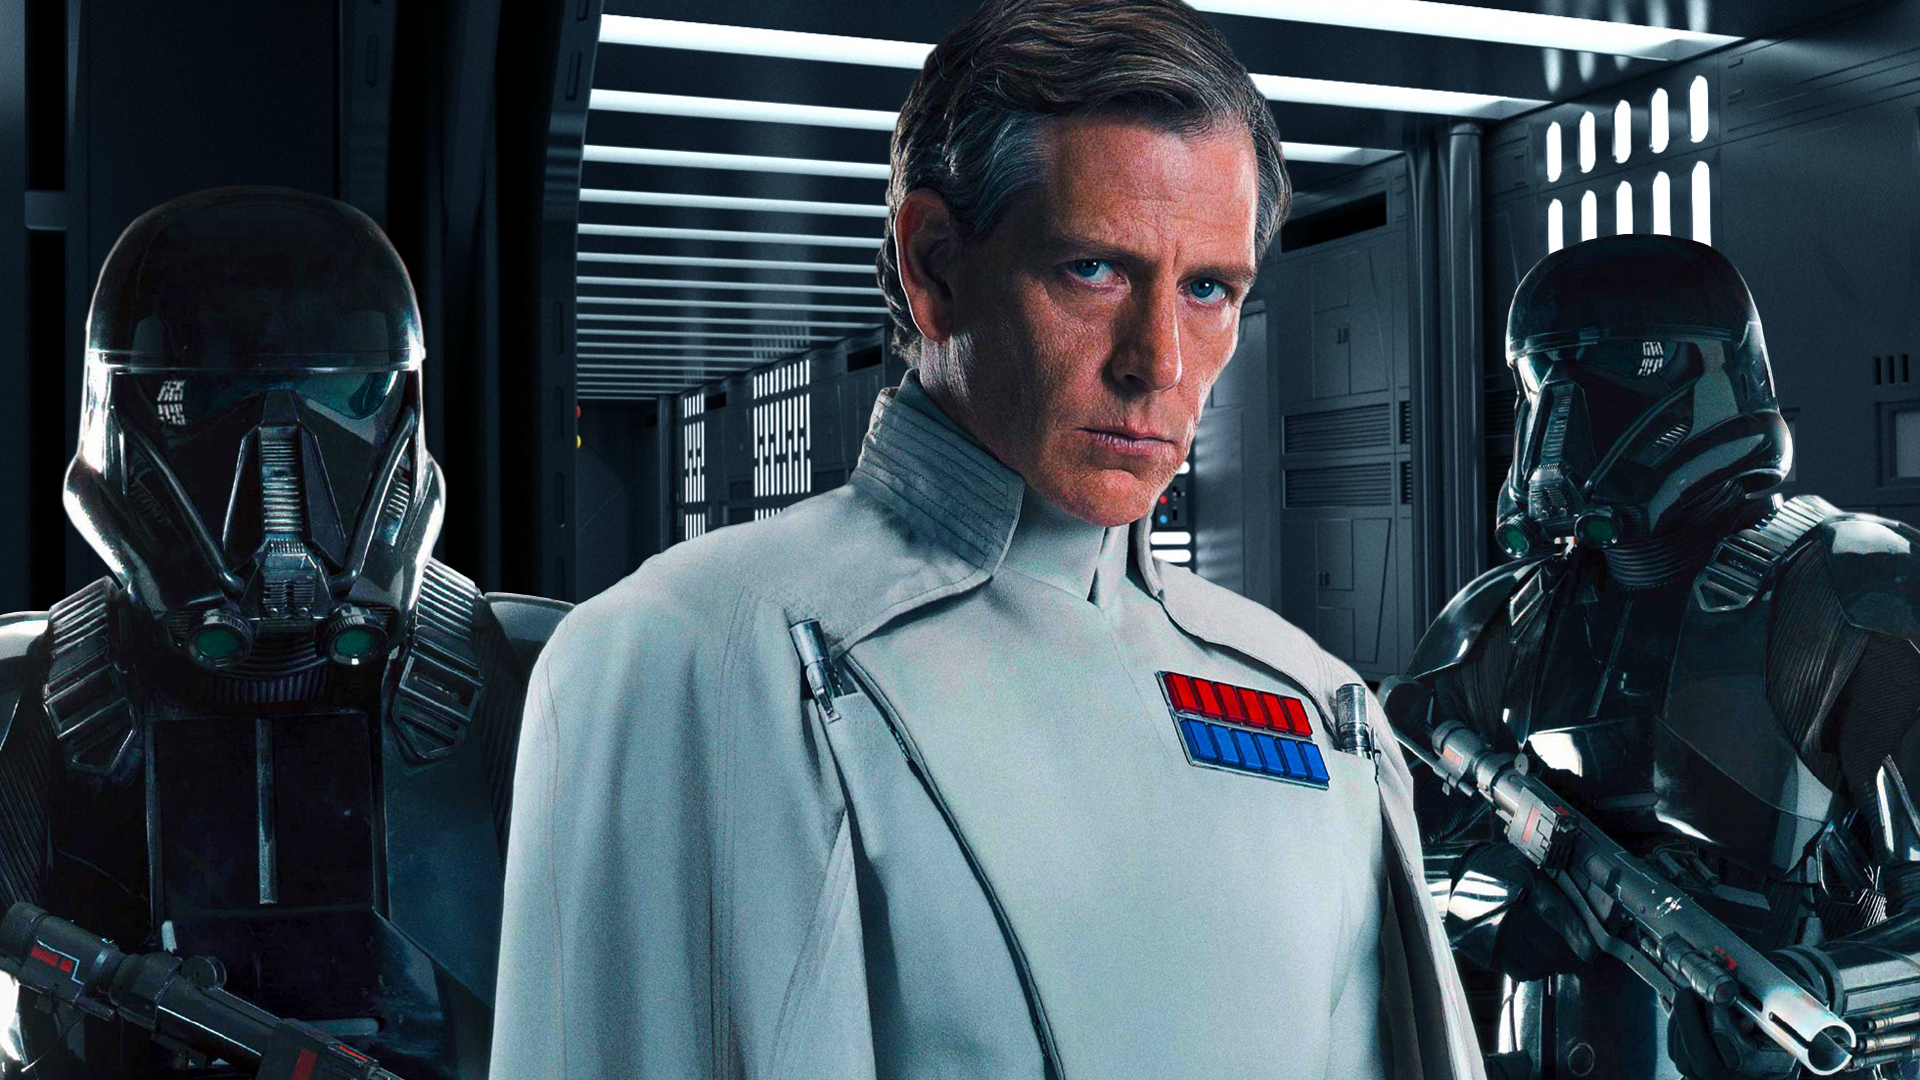 rogue_one_empire_magazine_wallpaper_1__krennic__by_spirit__of_adventure-dagjlvk